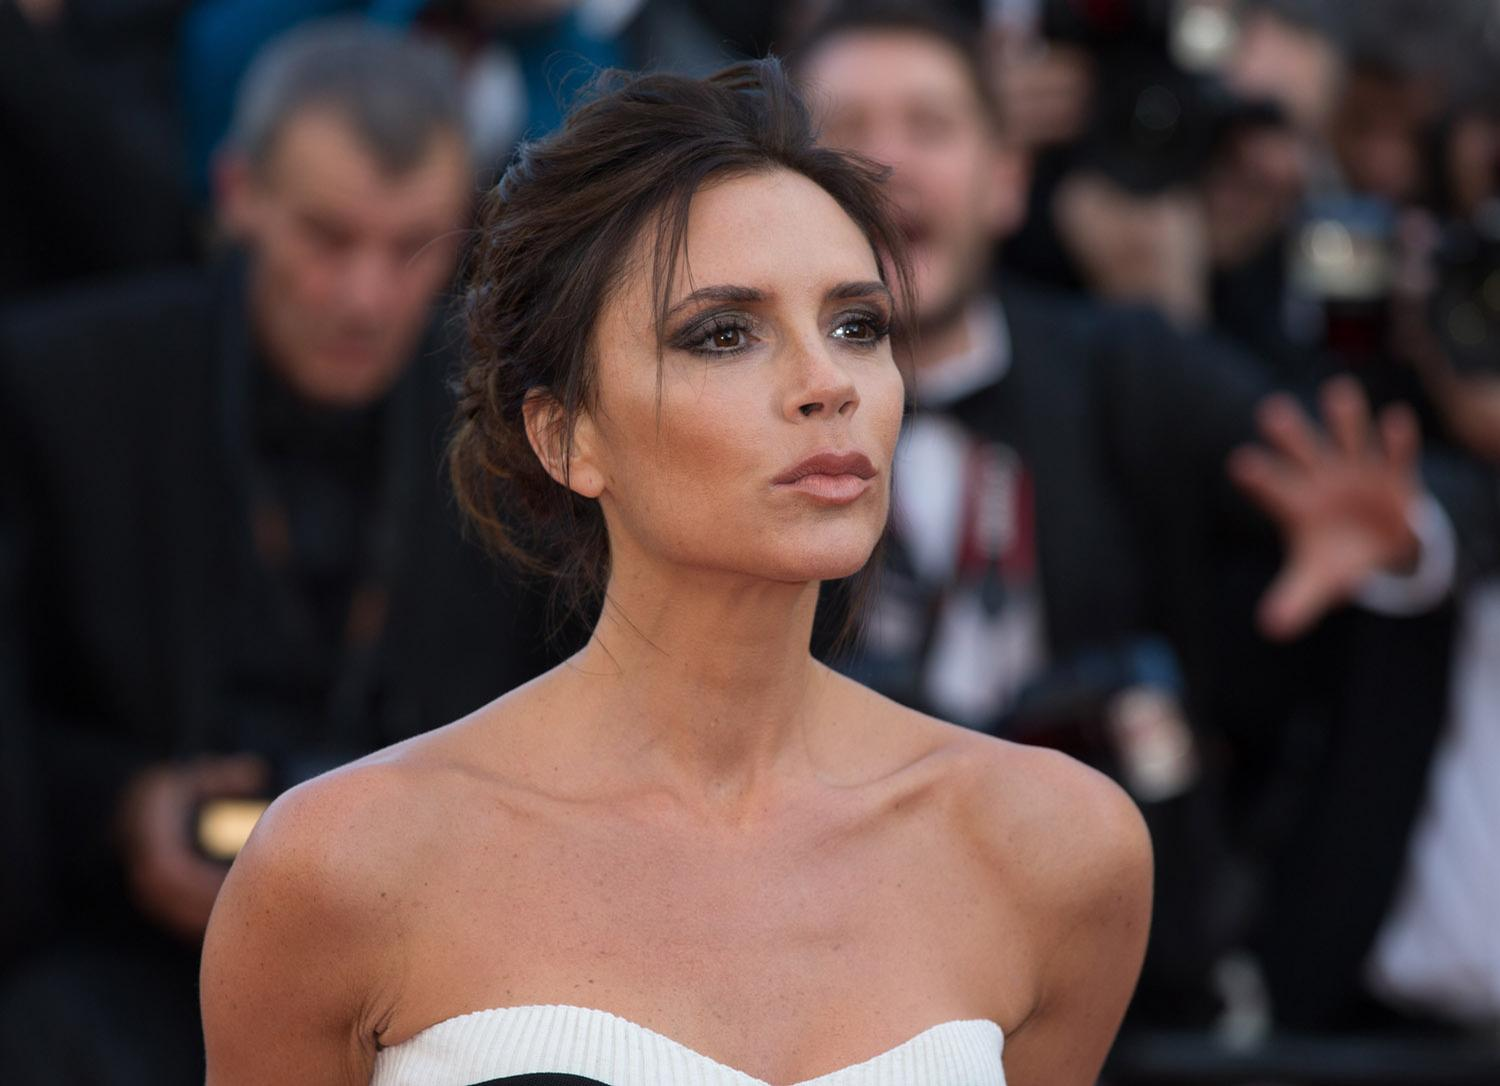 'I talk a lot about my lifestyle, the vitamins I take and about the working out, so that's what's next – wellness,' says Victoria Beckham.